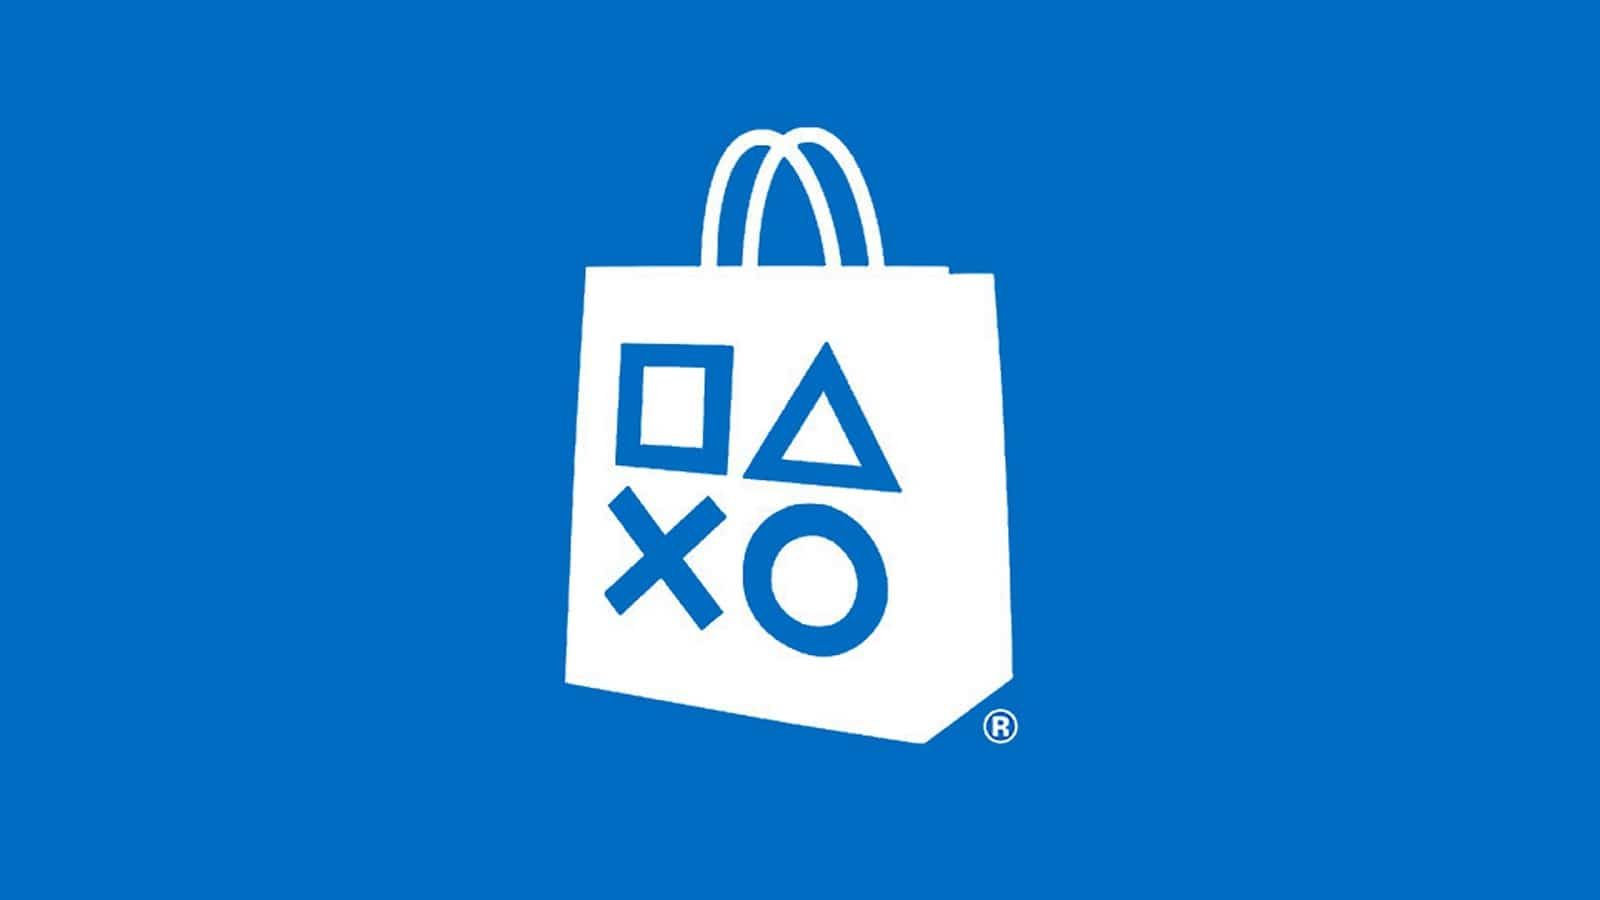 playstation store from sony logo on blue background